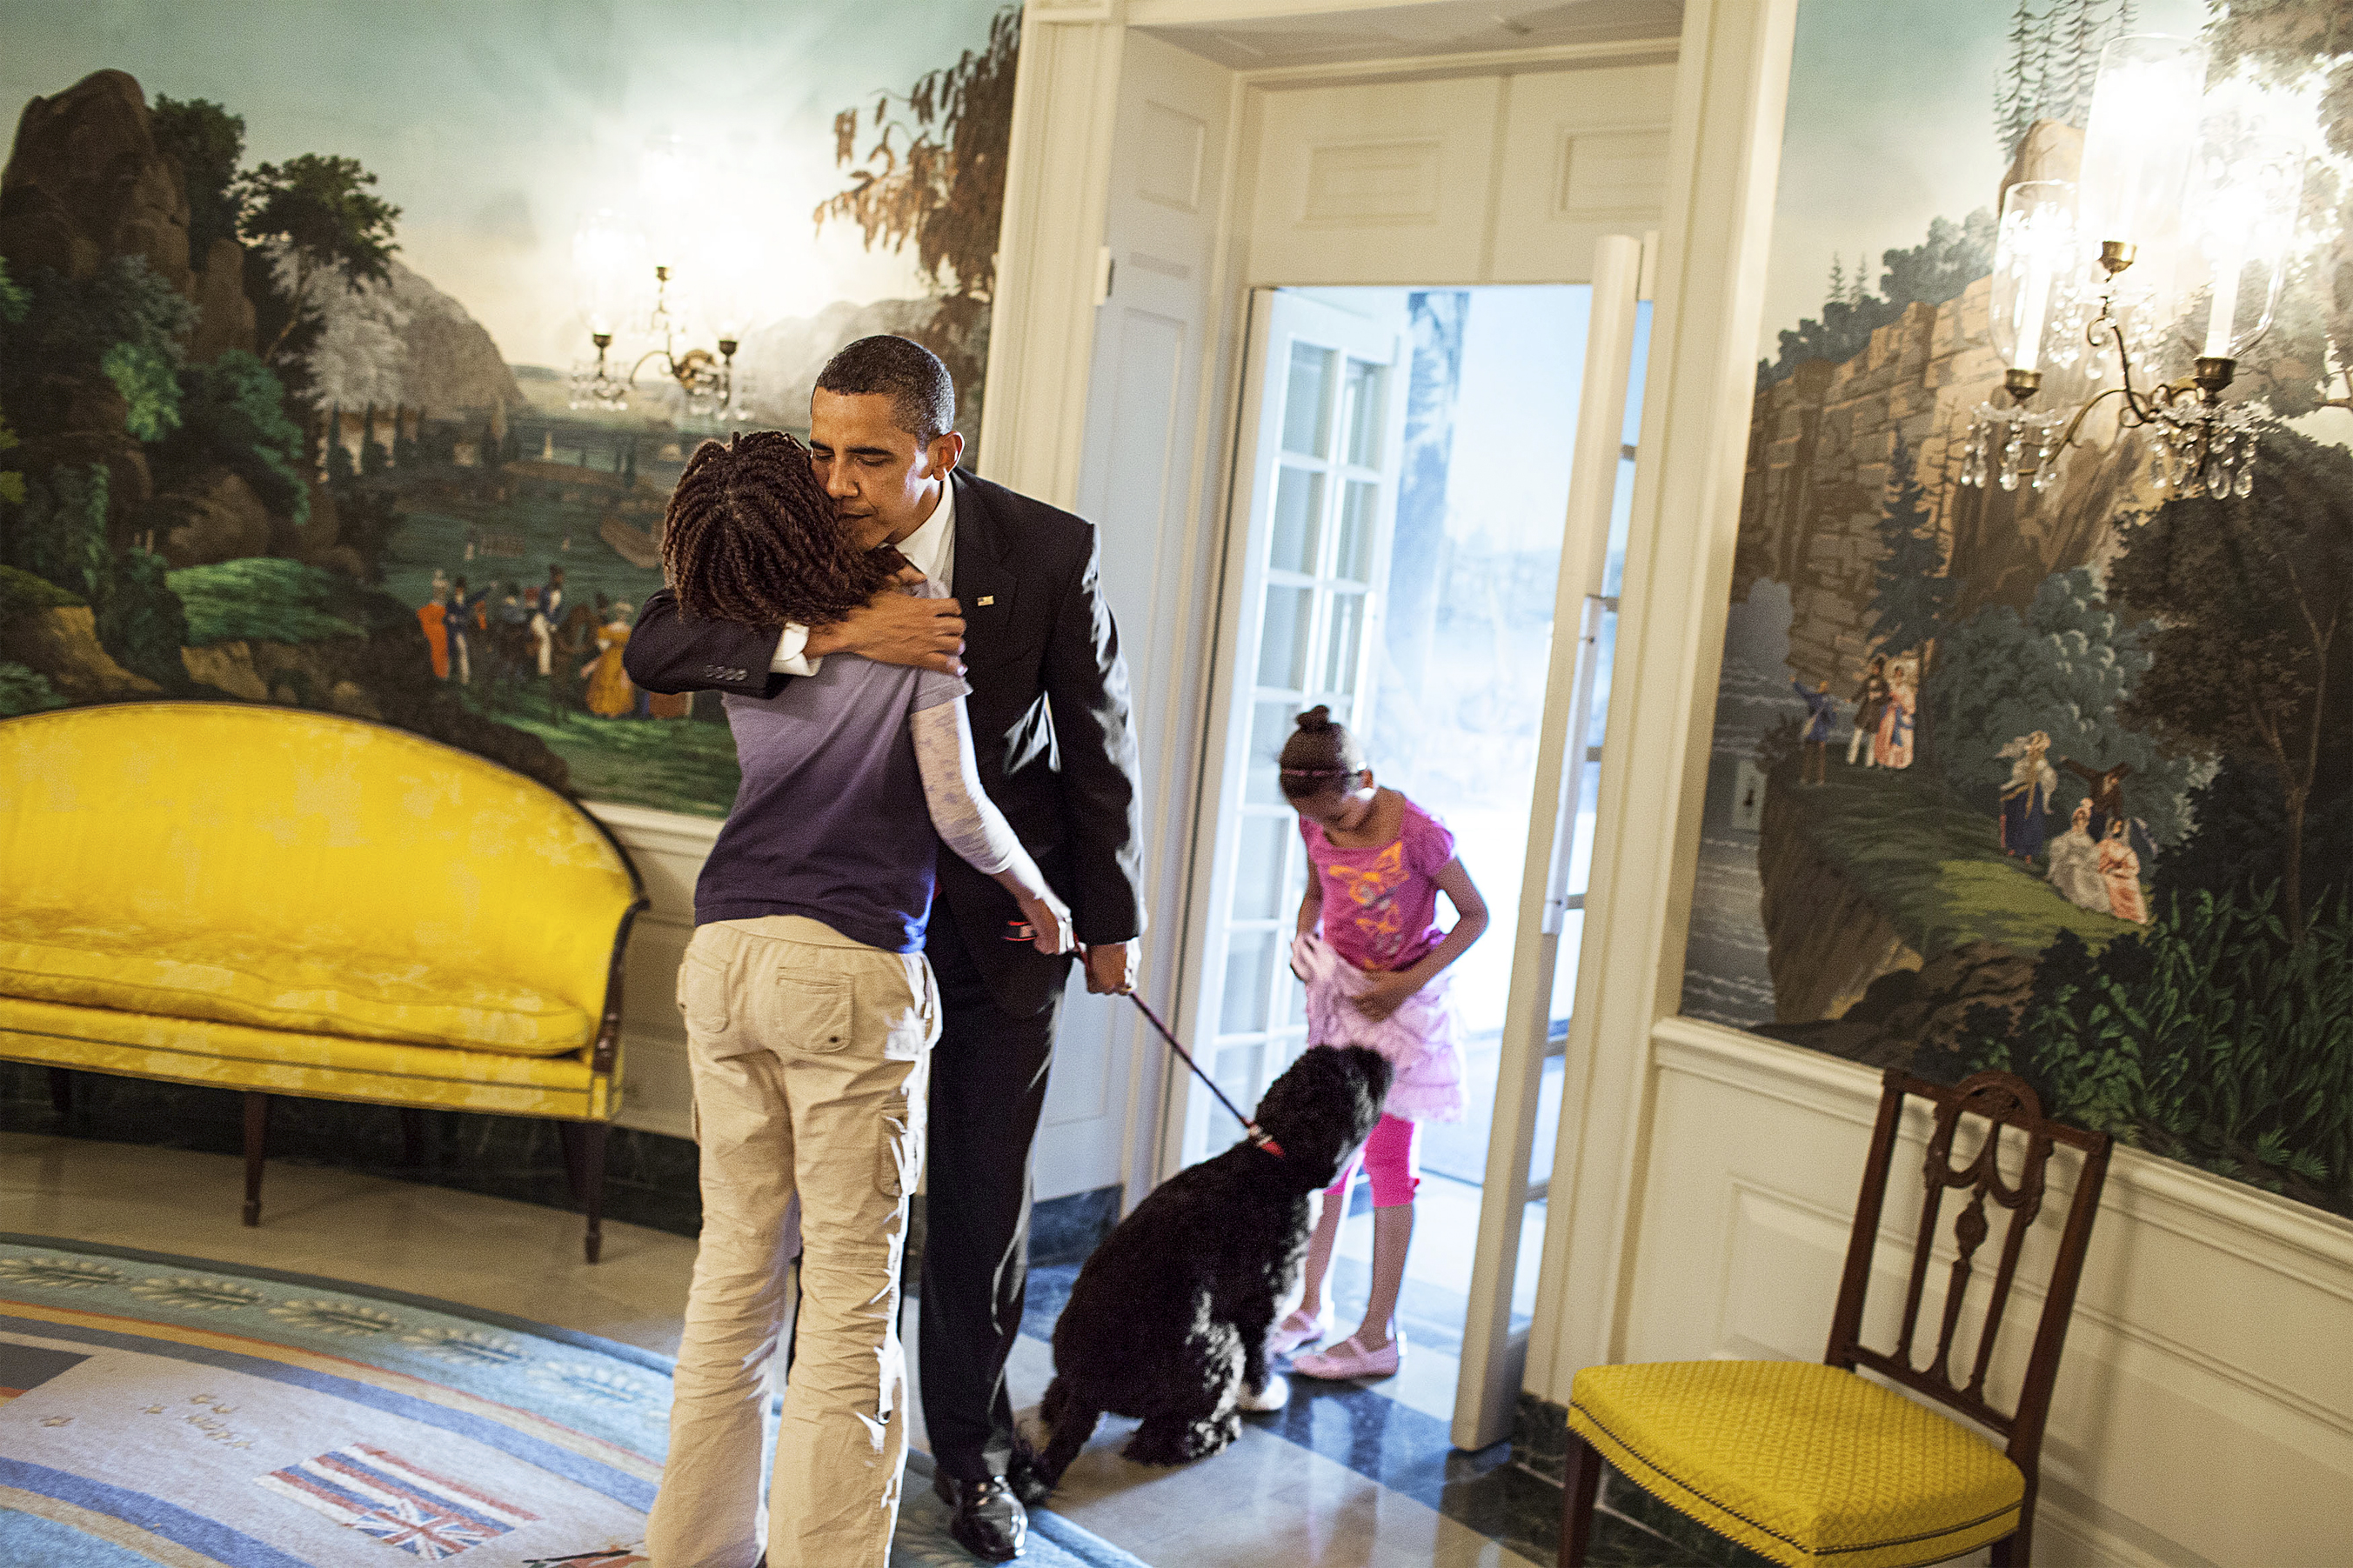 how the presidency made me a better father the huffington post 2015 06 21 1434913782 4775481 potusessayimage1 jpg